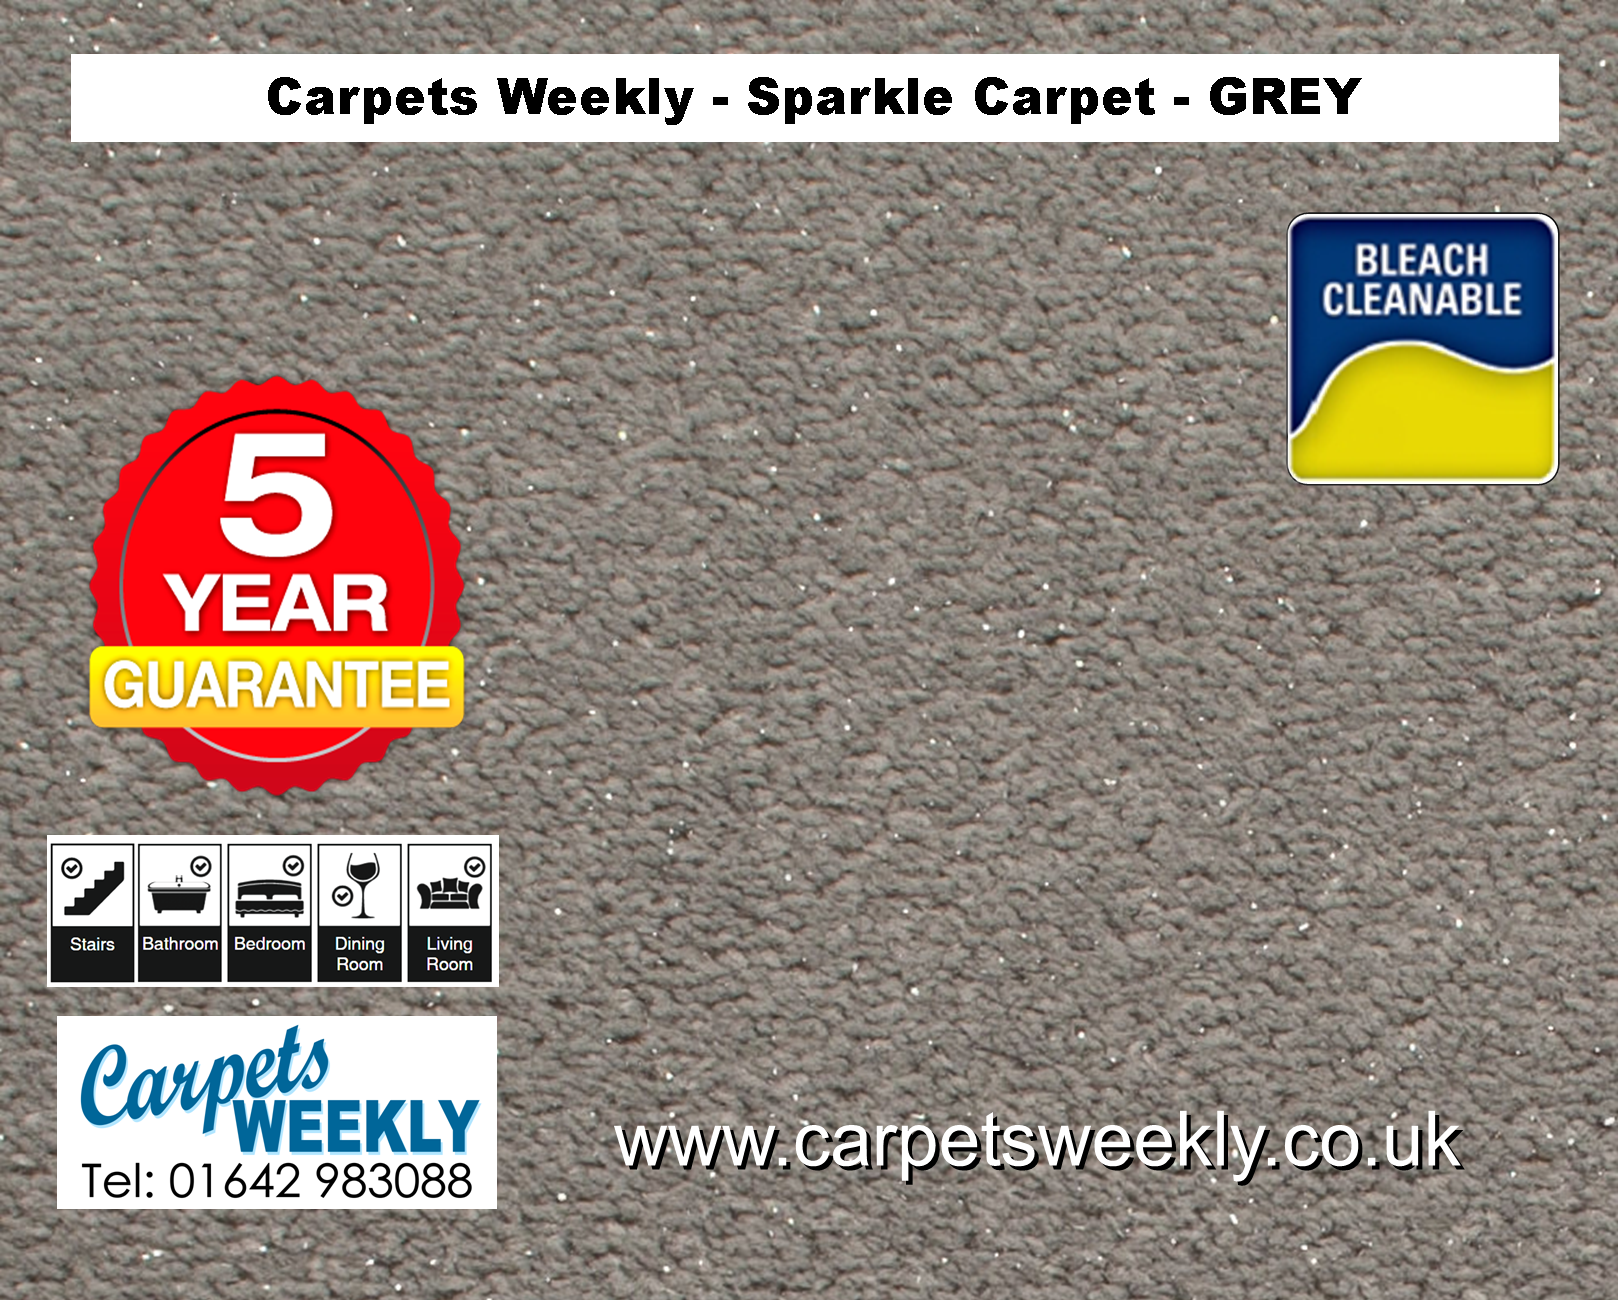 Grey Sparkle Carpet from Carpets Weekly